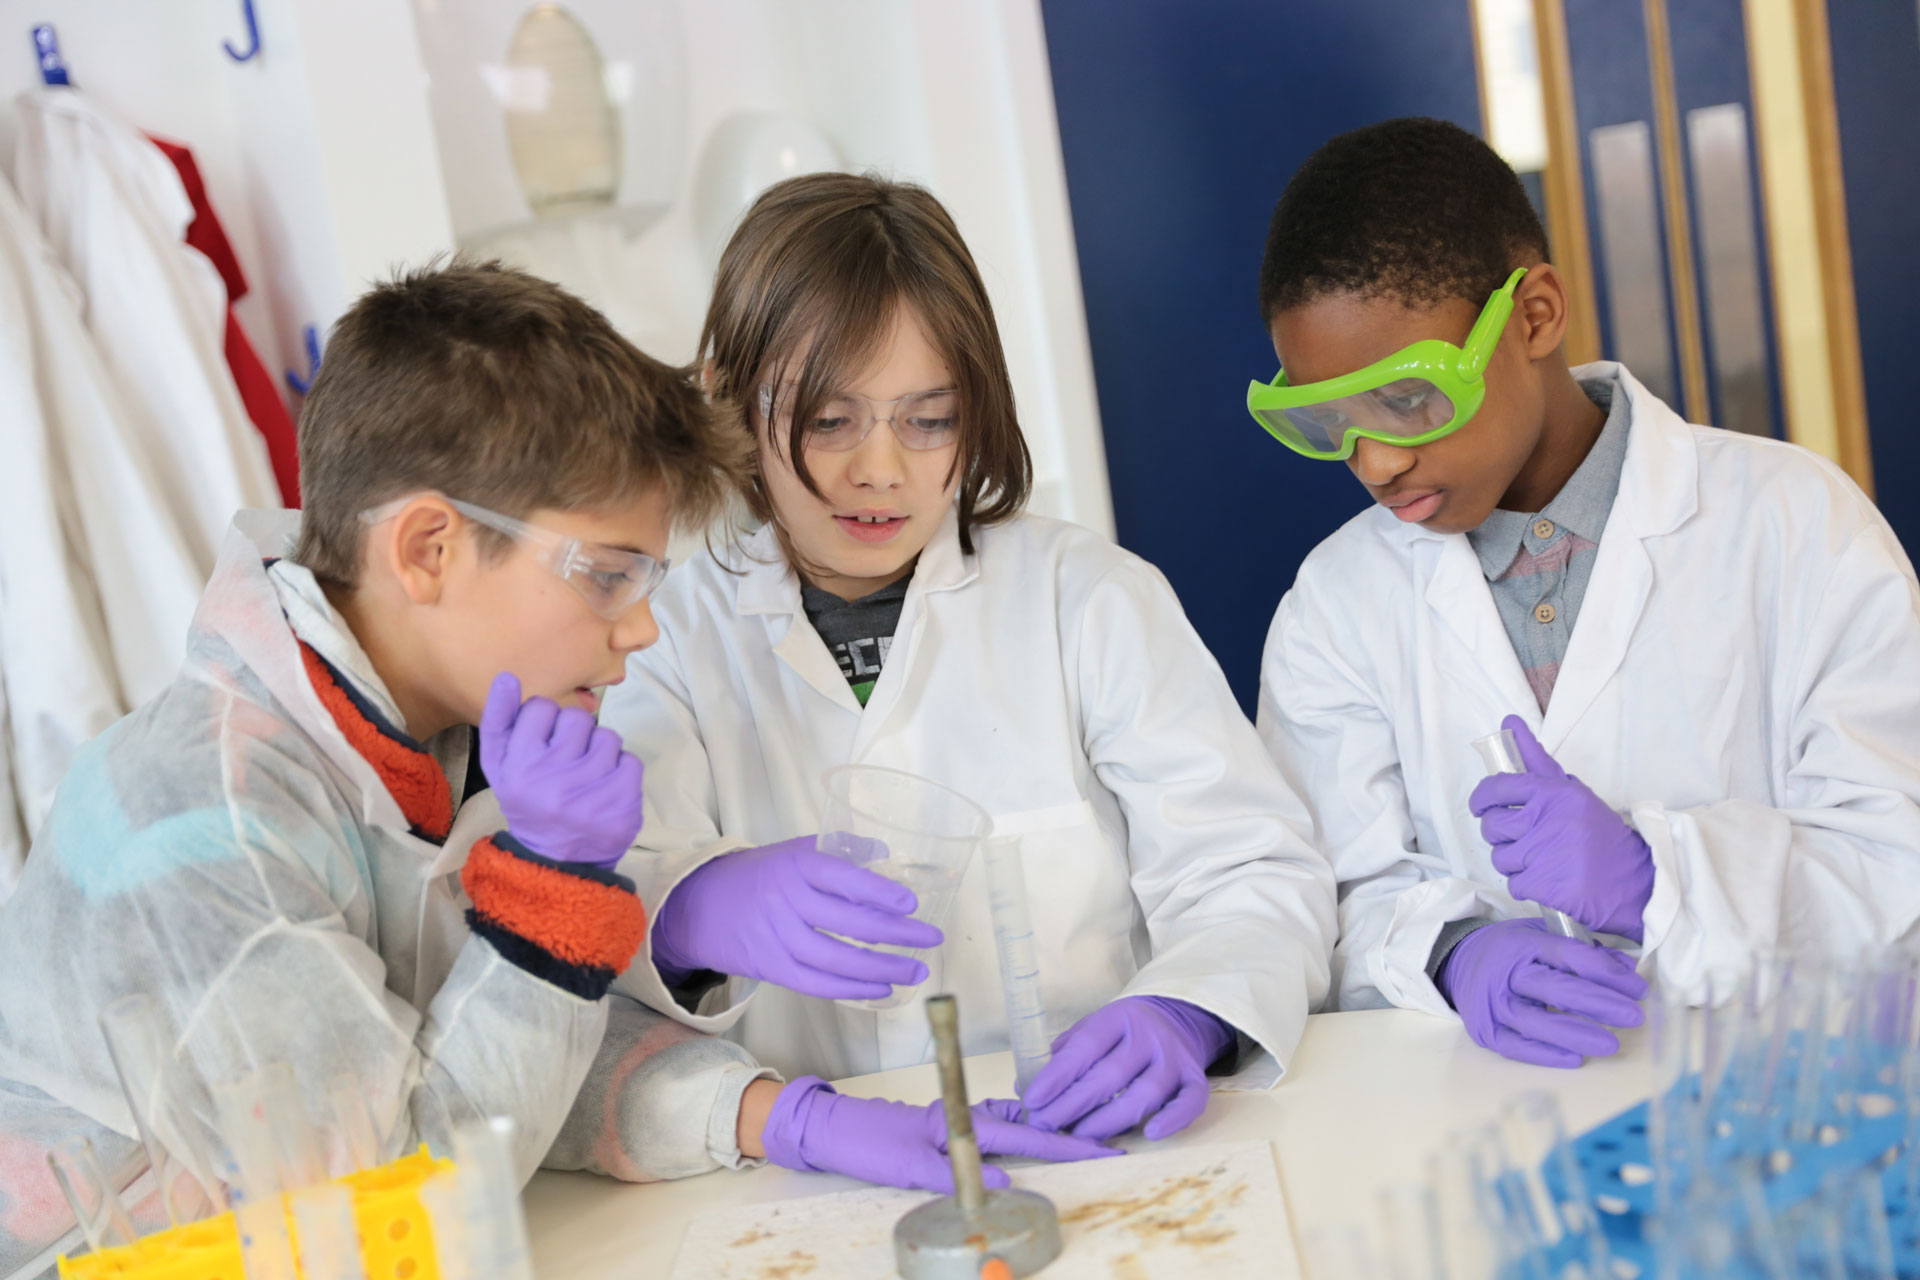 Advanced Science camps for children aged 9-14 with Richer Education in London